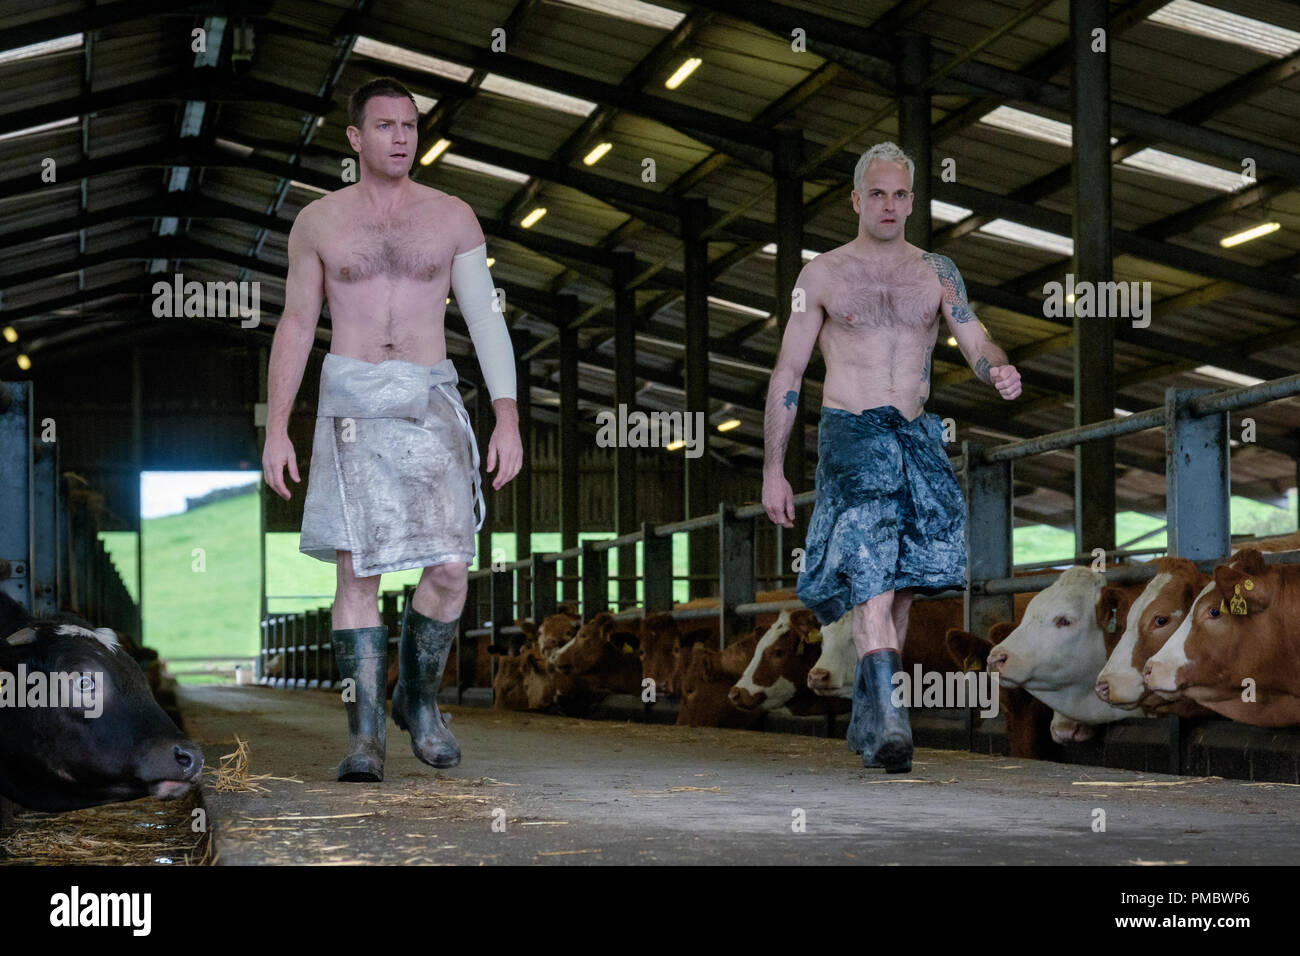 Mark renton ewan mcgregor and simon jonny lee miller striding out of cow barn in trisstar pictures t2 trainspotting 2017